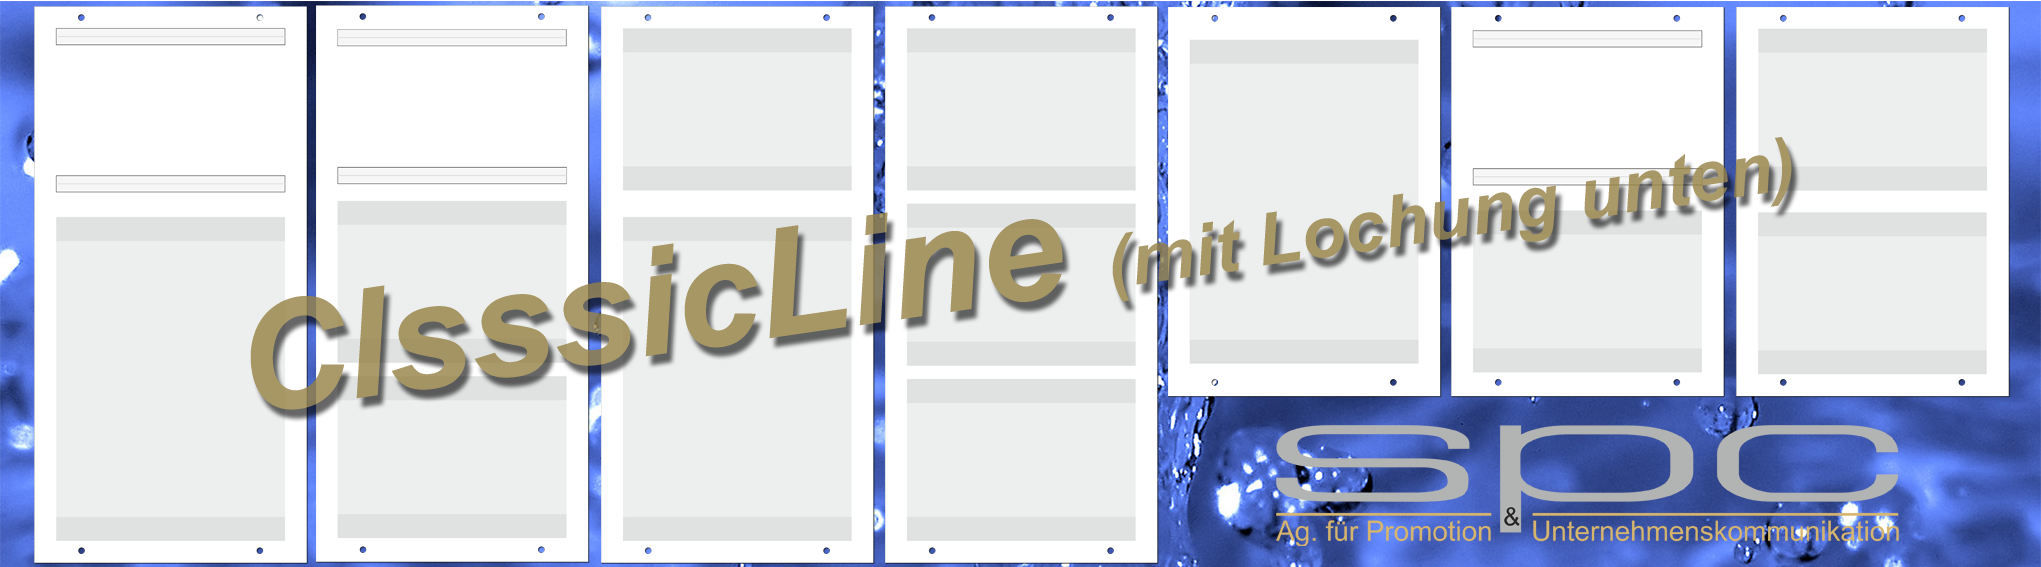 Banner-GS-ClassicLine-mit-Lochung